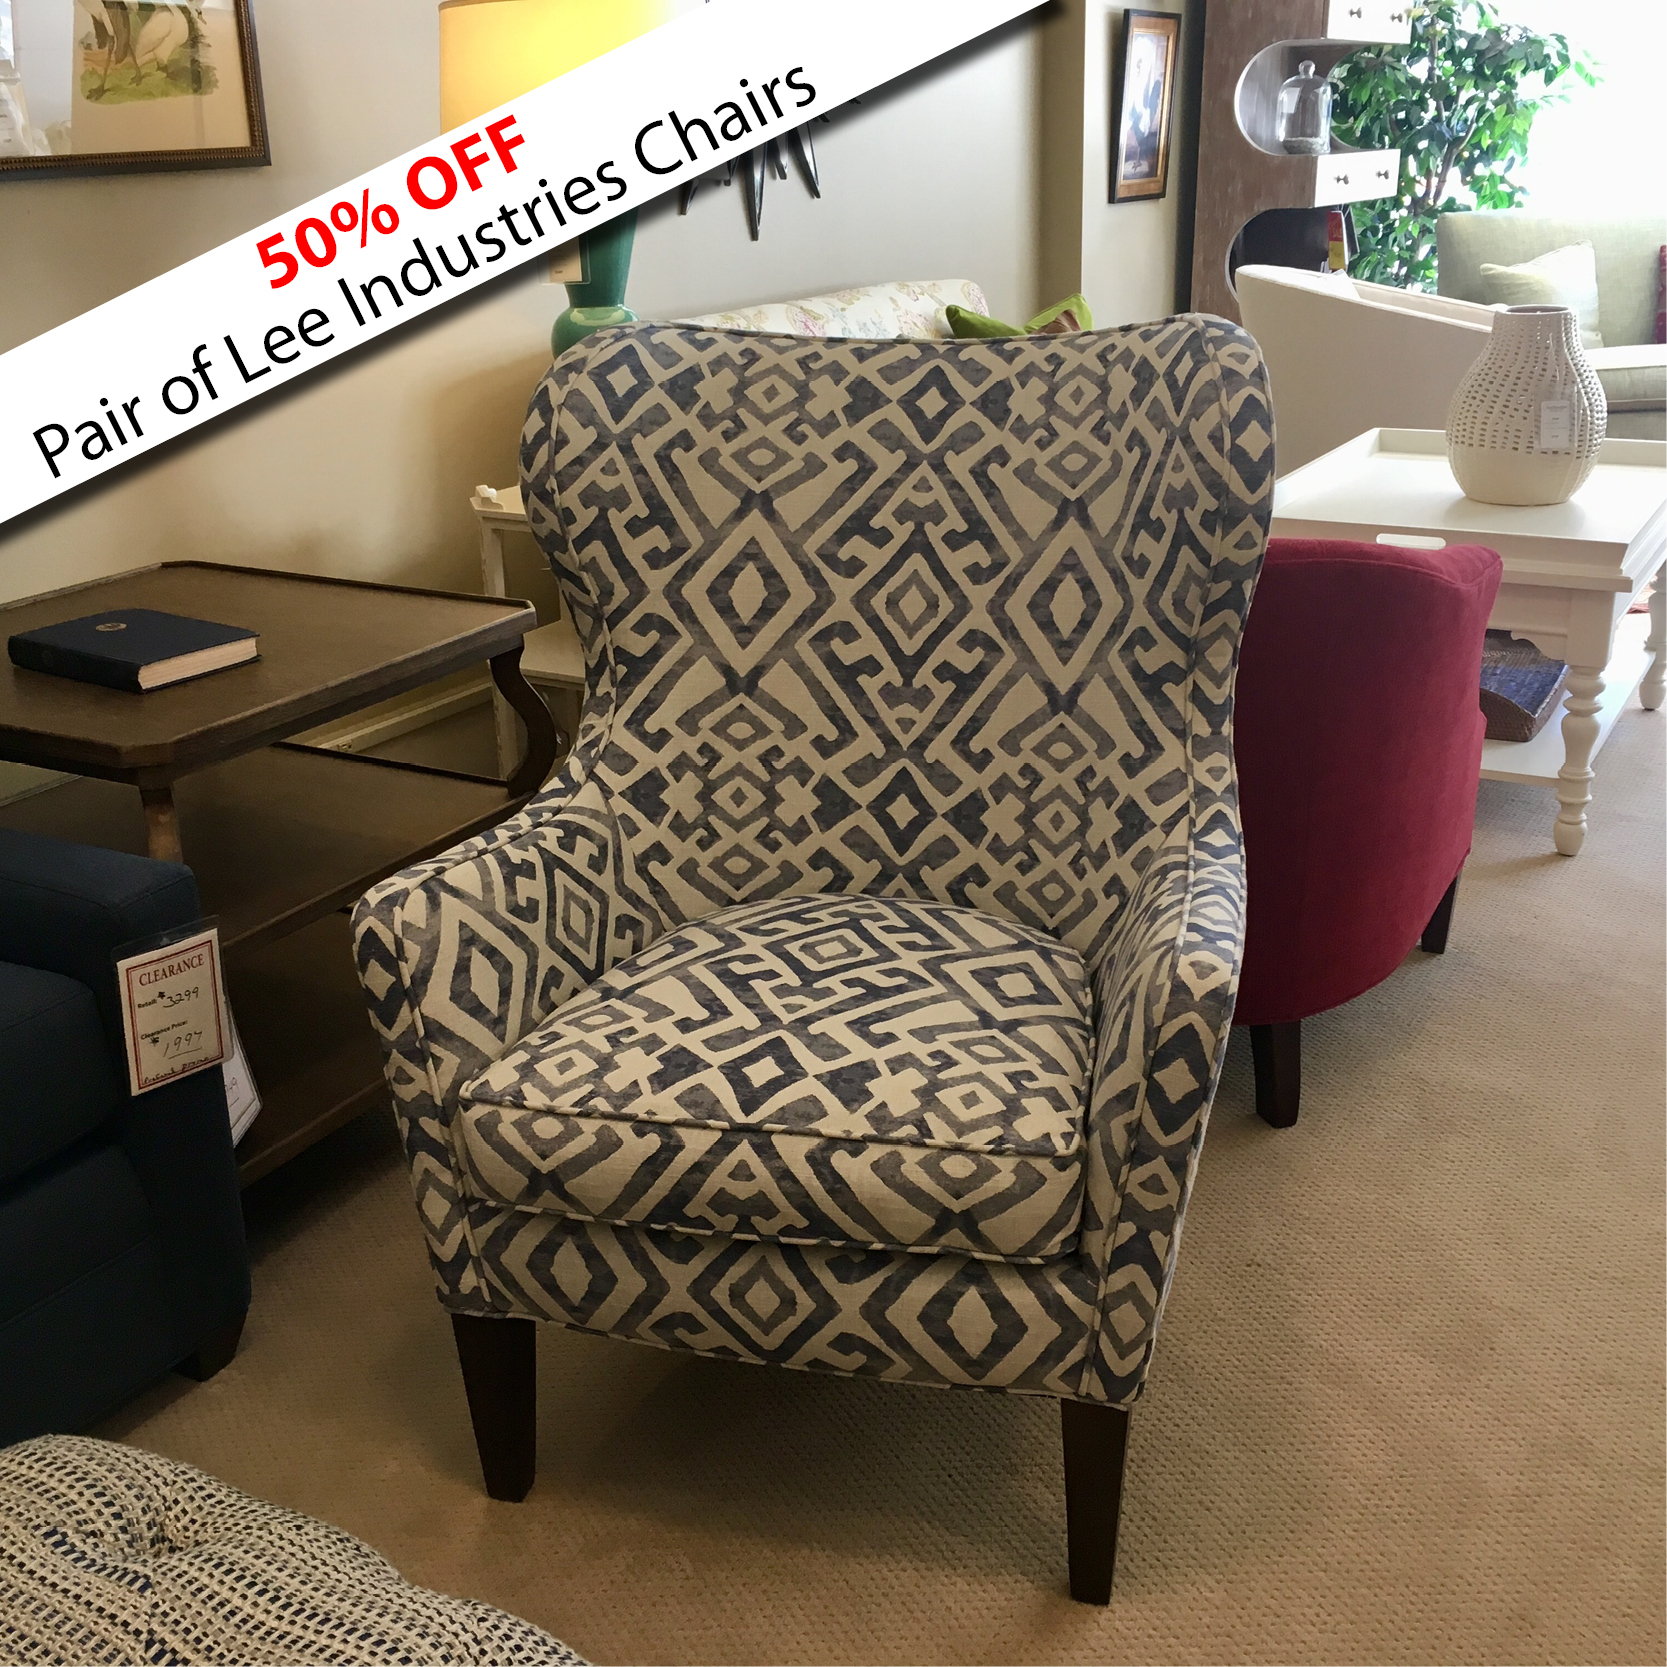 Lee Chairs on Sale